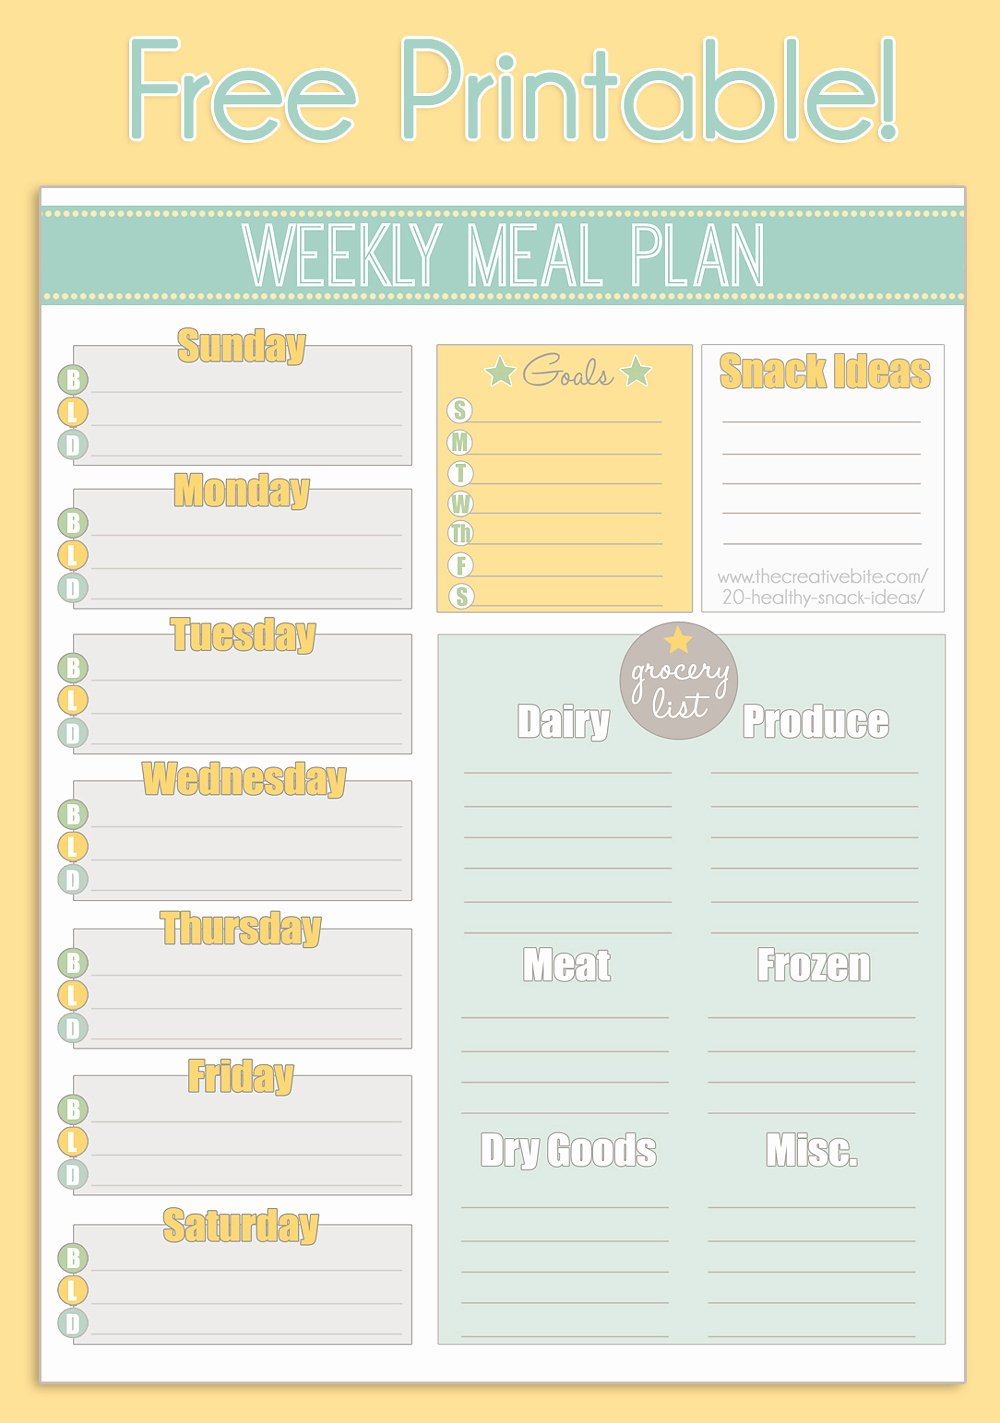 Free Printable Meal Plan Template Inspirational Free Printable Weekly Meal Planner Calendar